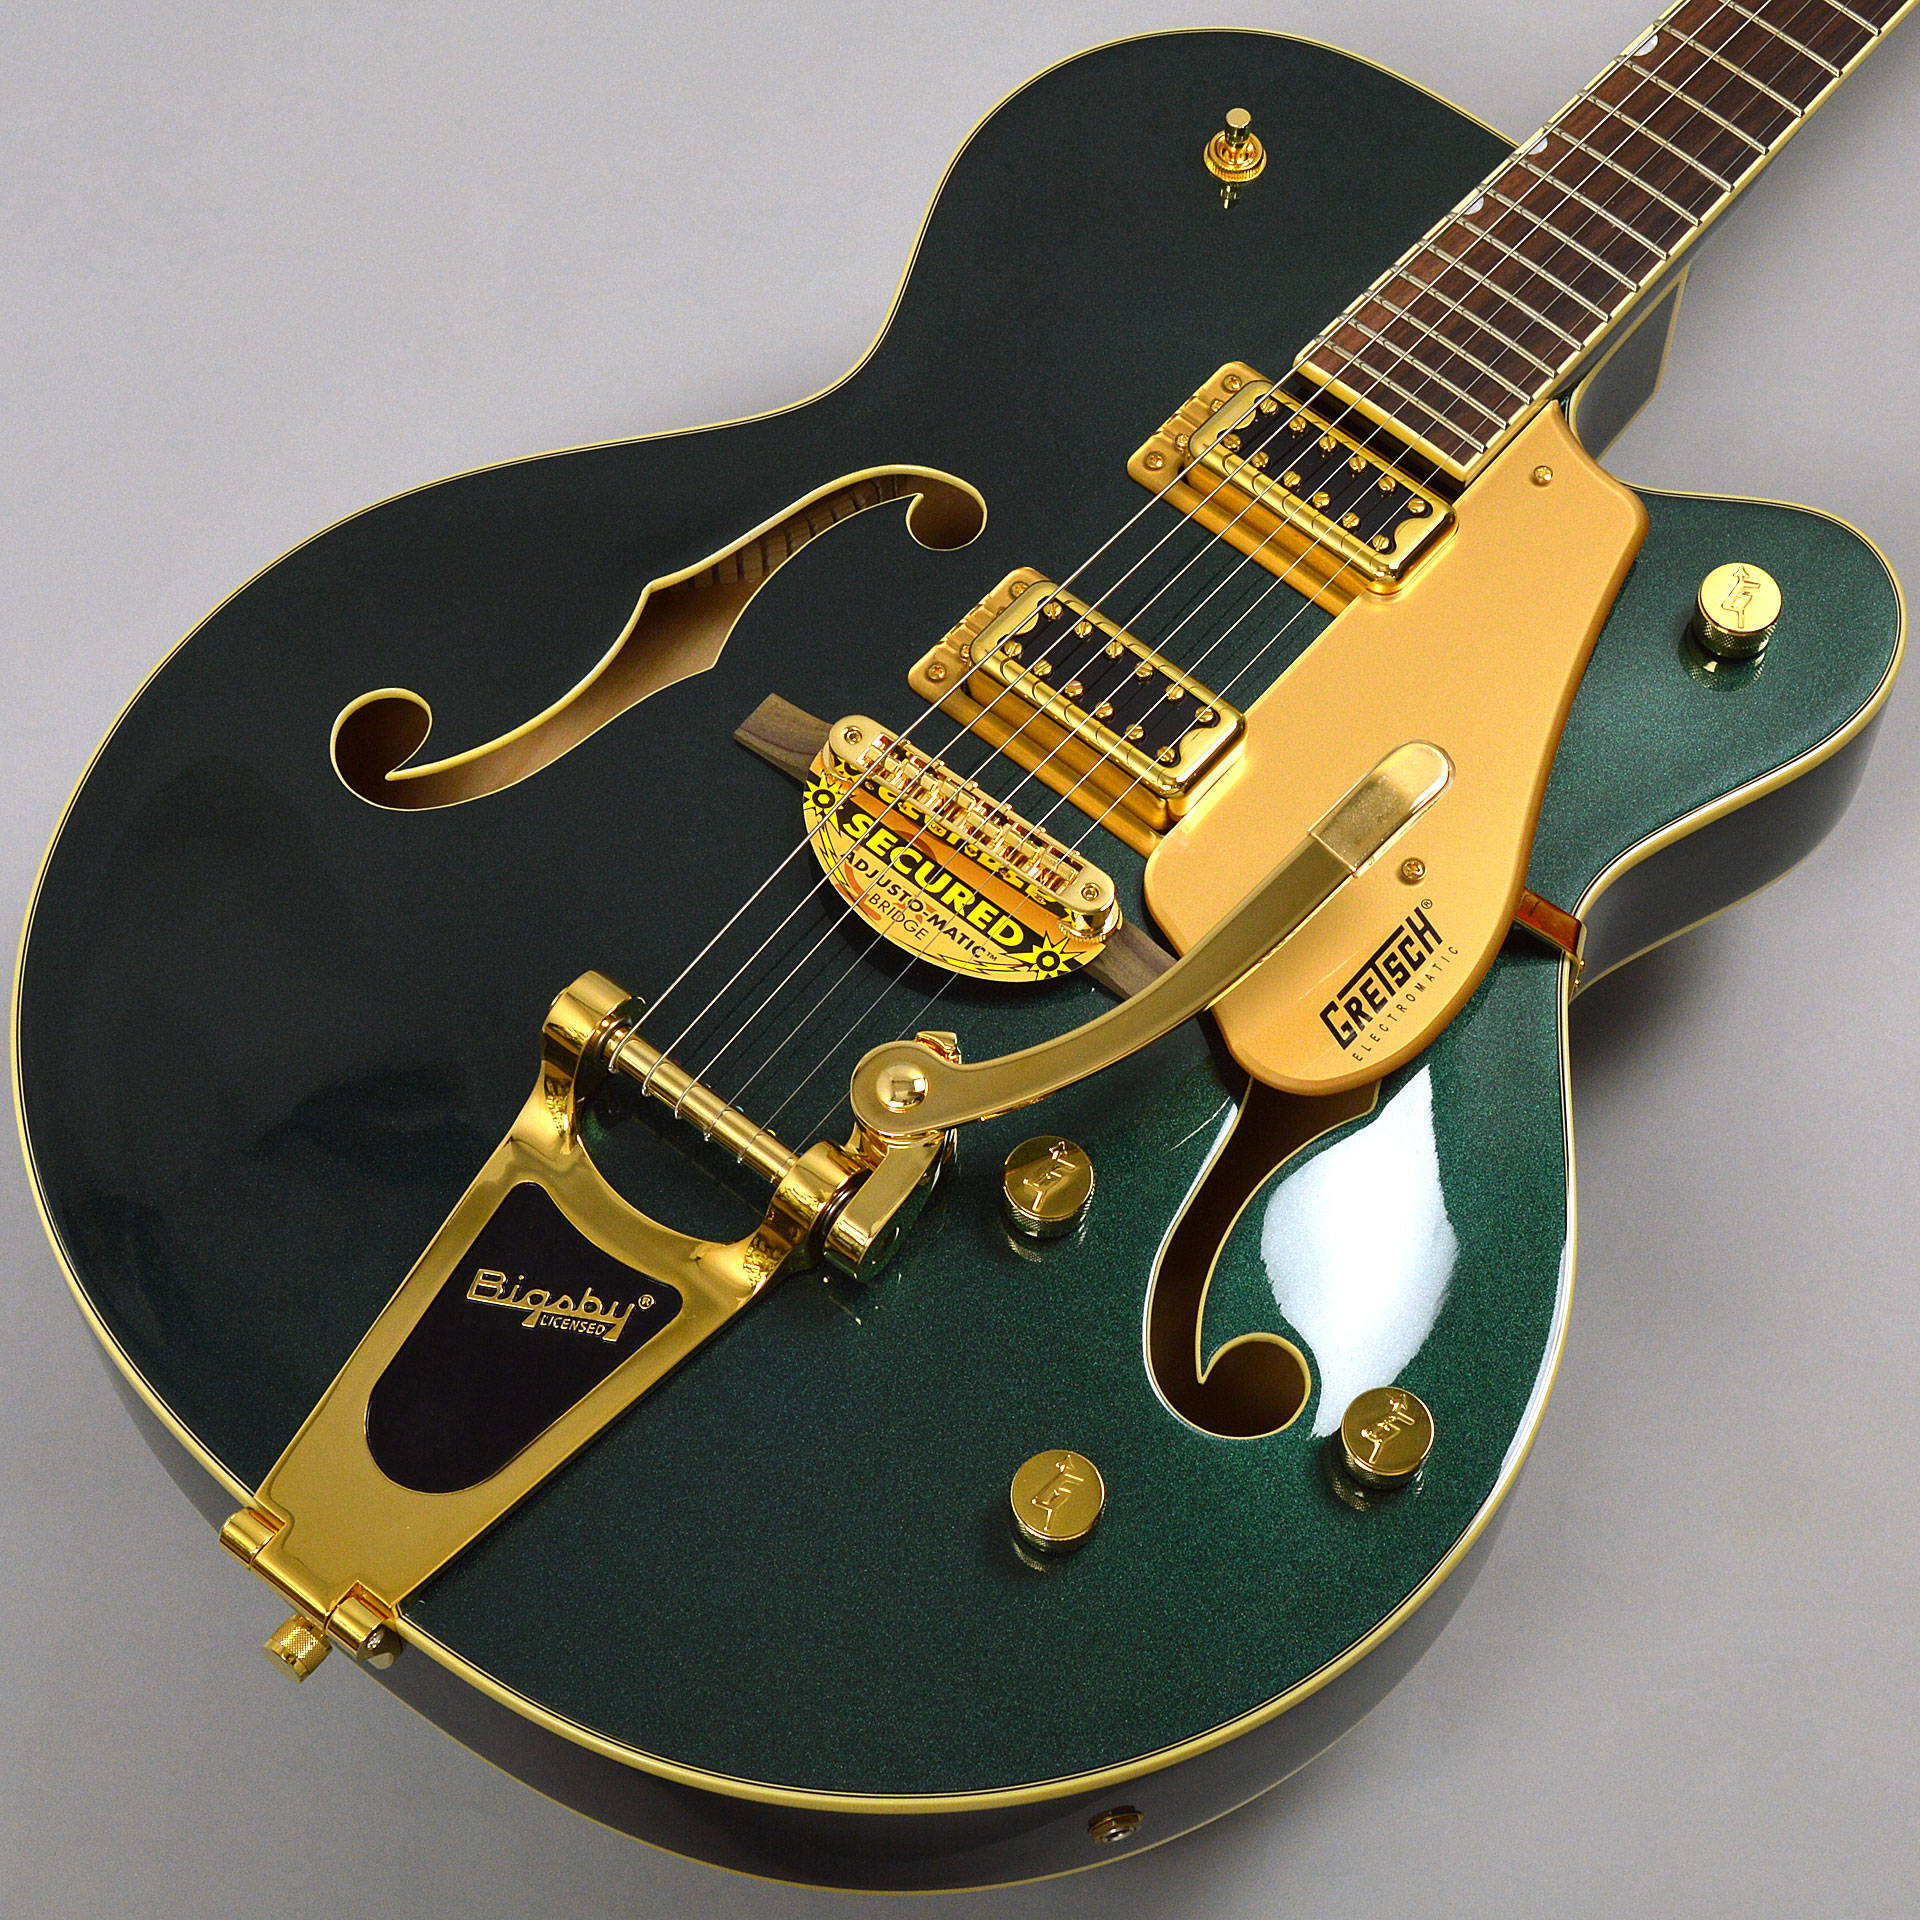 GRETSCH G5420TG Limited Edition Electromatic Hollow Body Single-Cut with Bigsbyサムネ画像